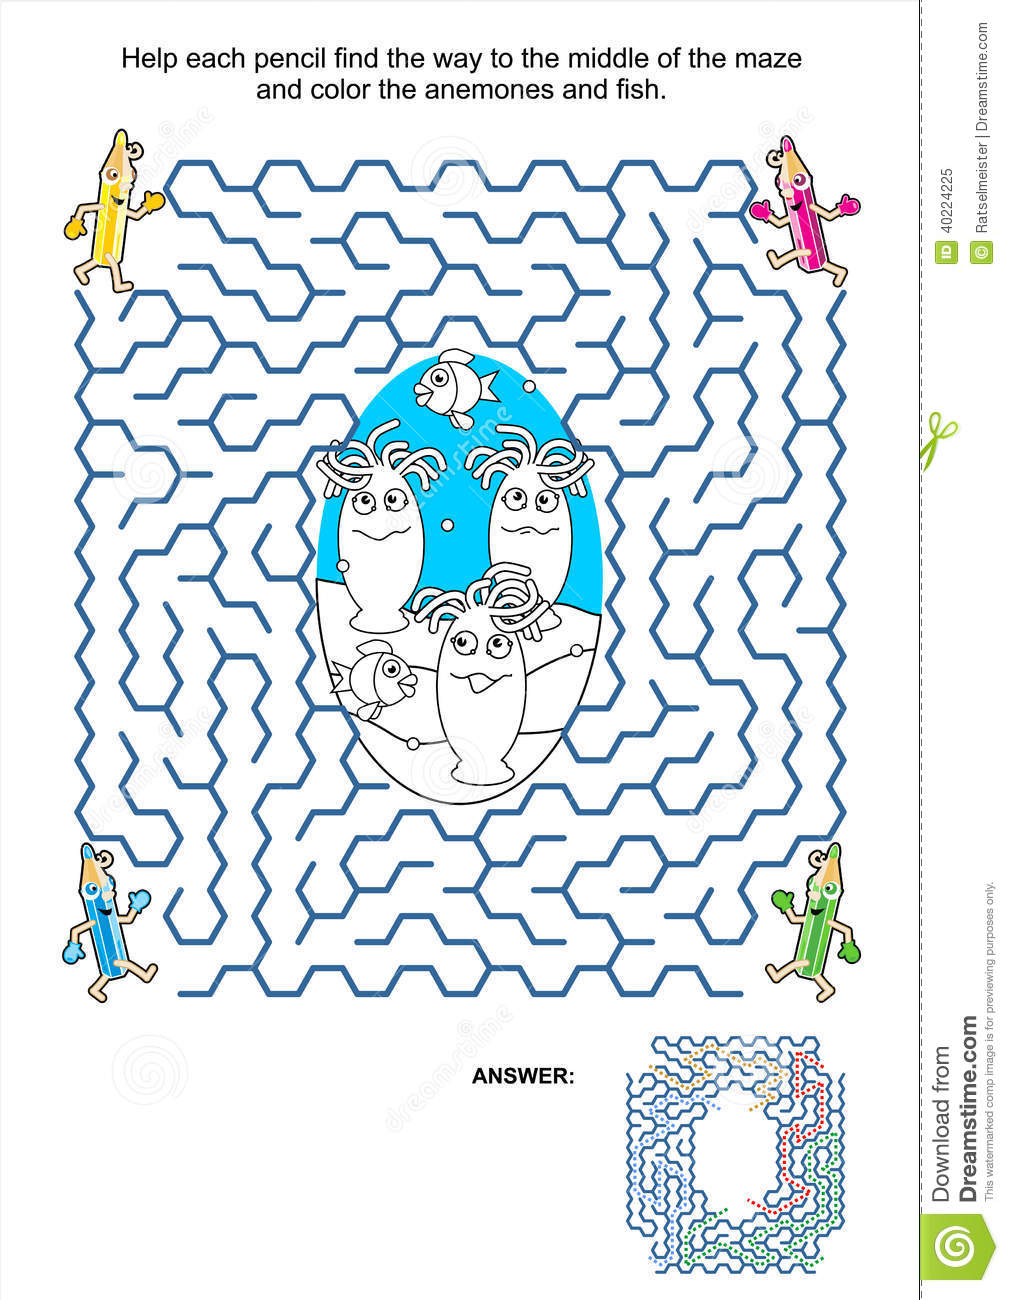 Maze Game And Coloring Page - Anemones And Fish Stock Vector ...